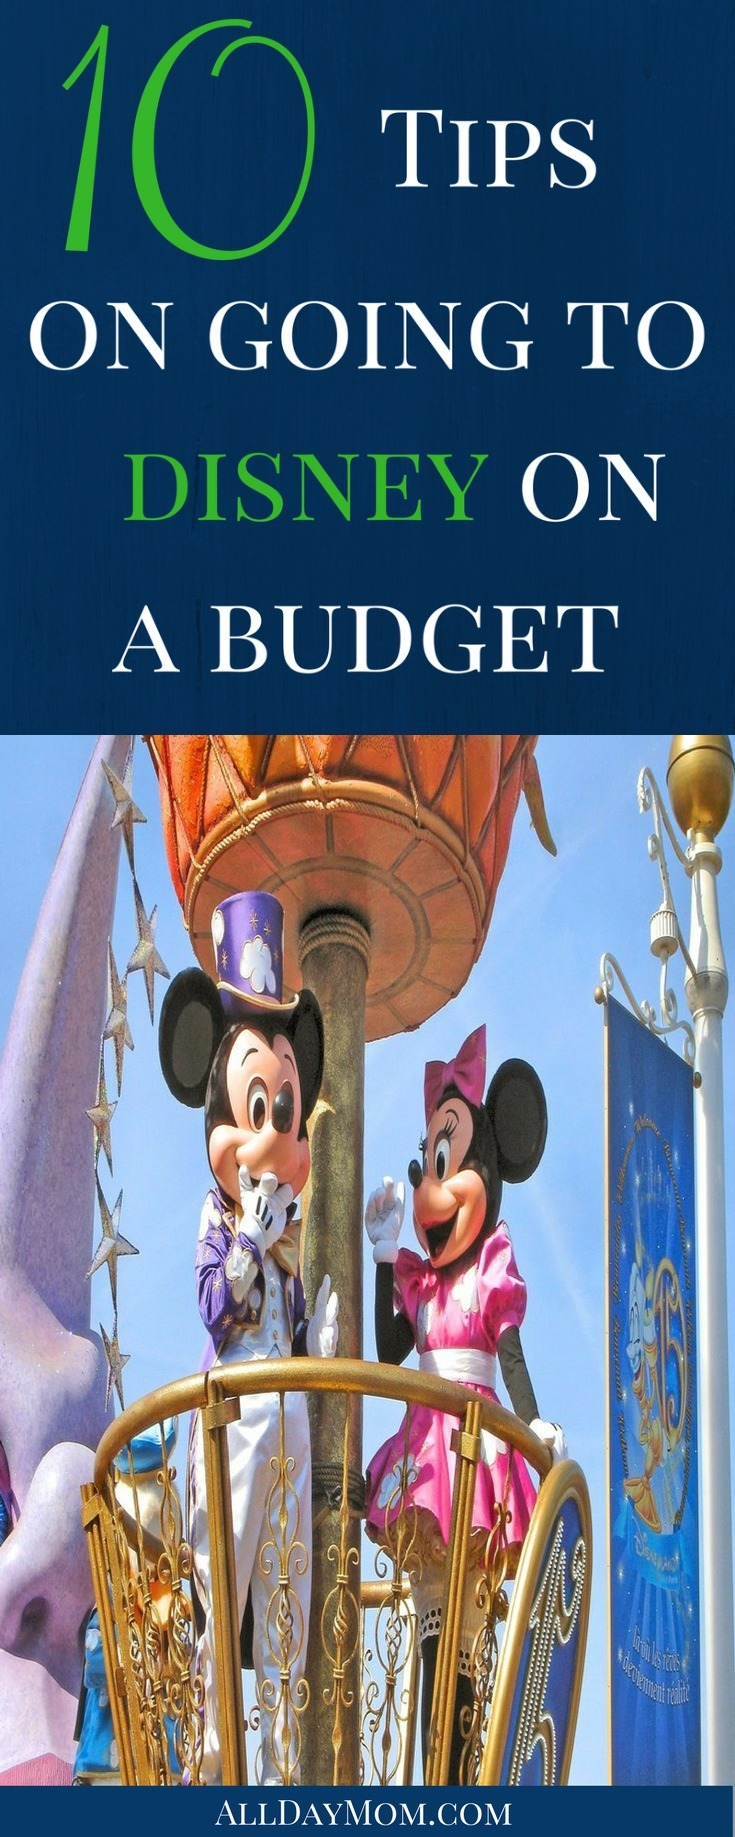 WDW Budget Tips! 10 tips for going to Disney on a Budget!